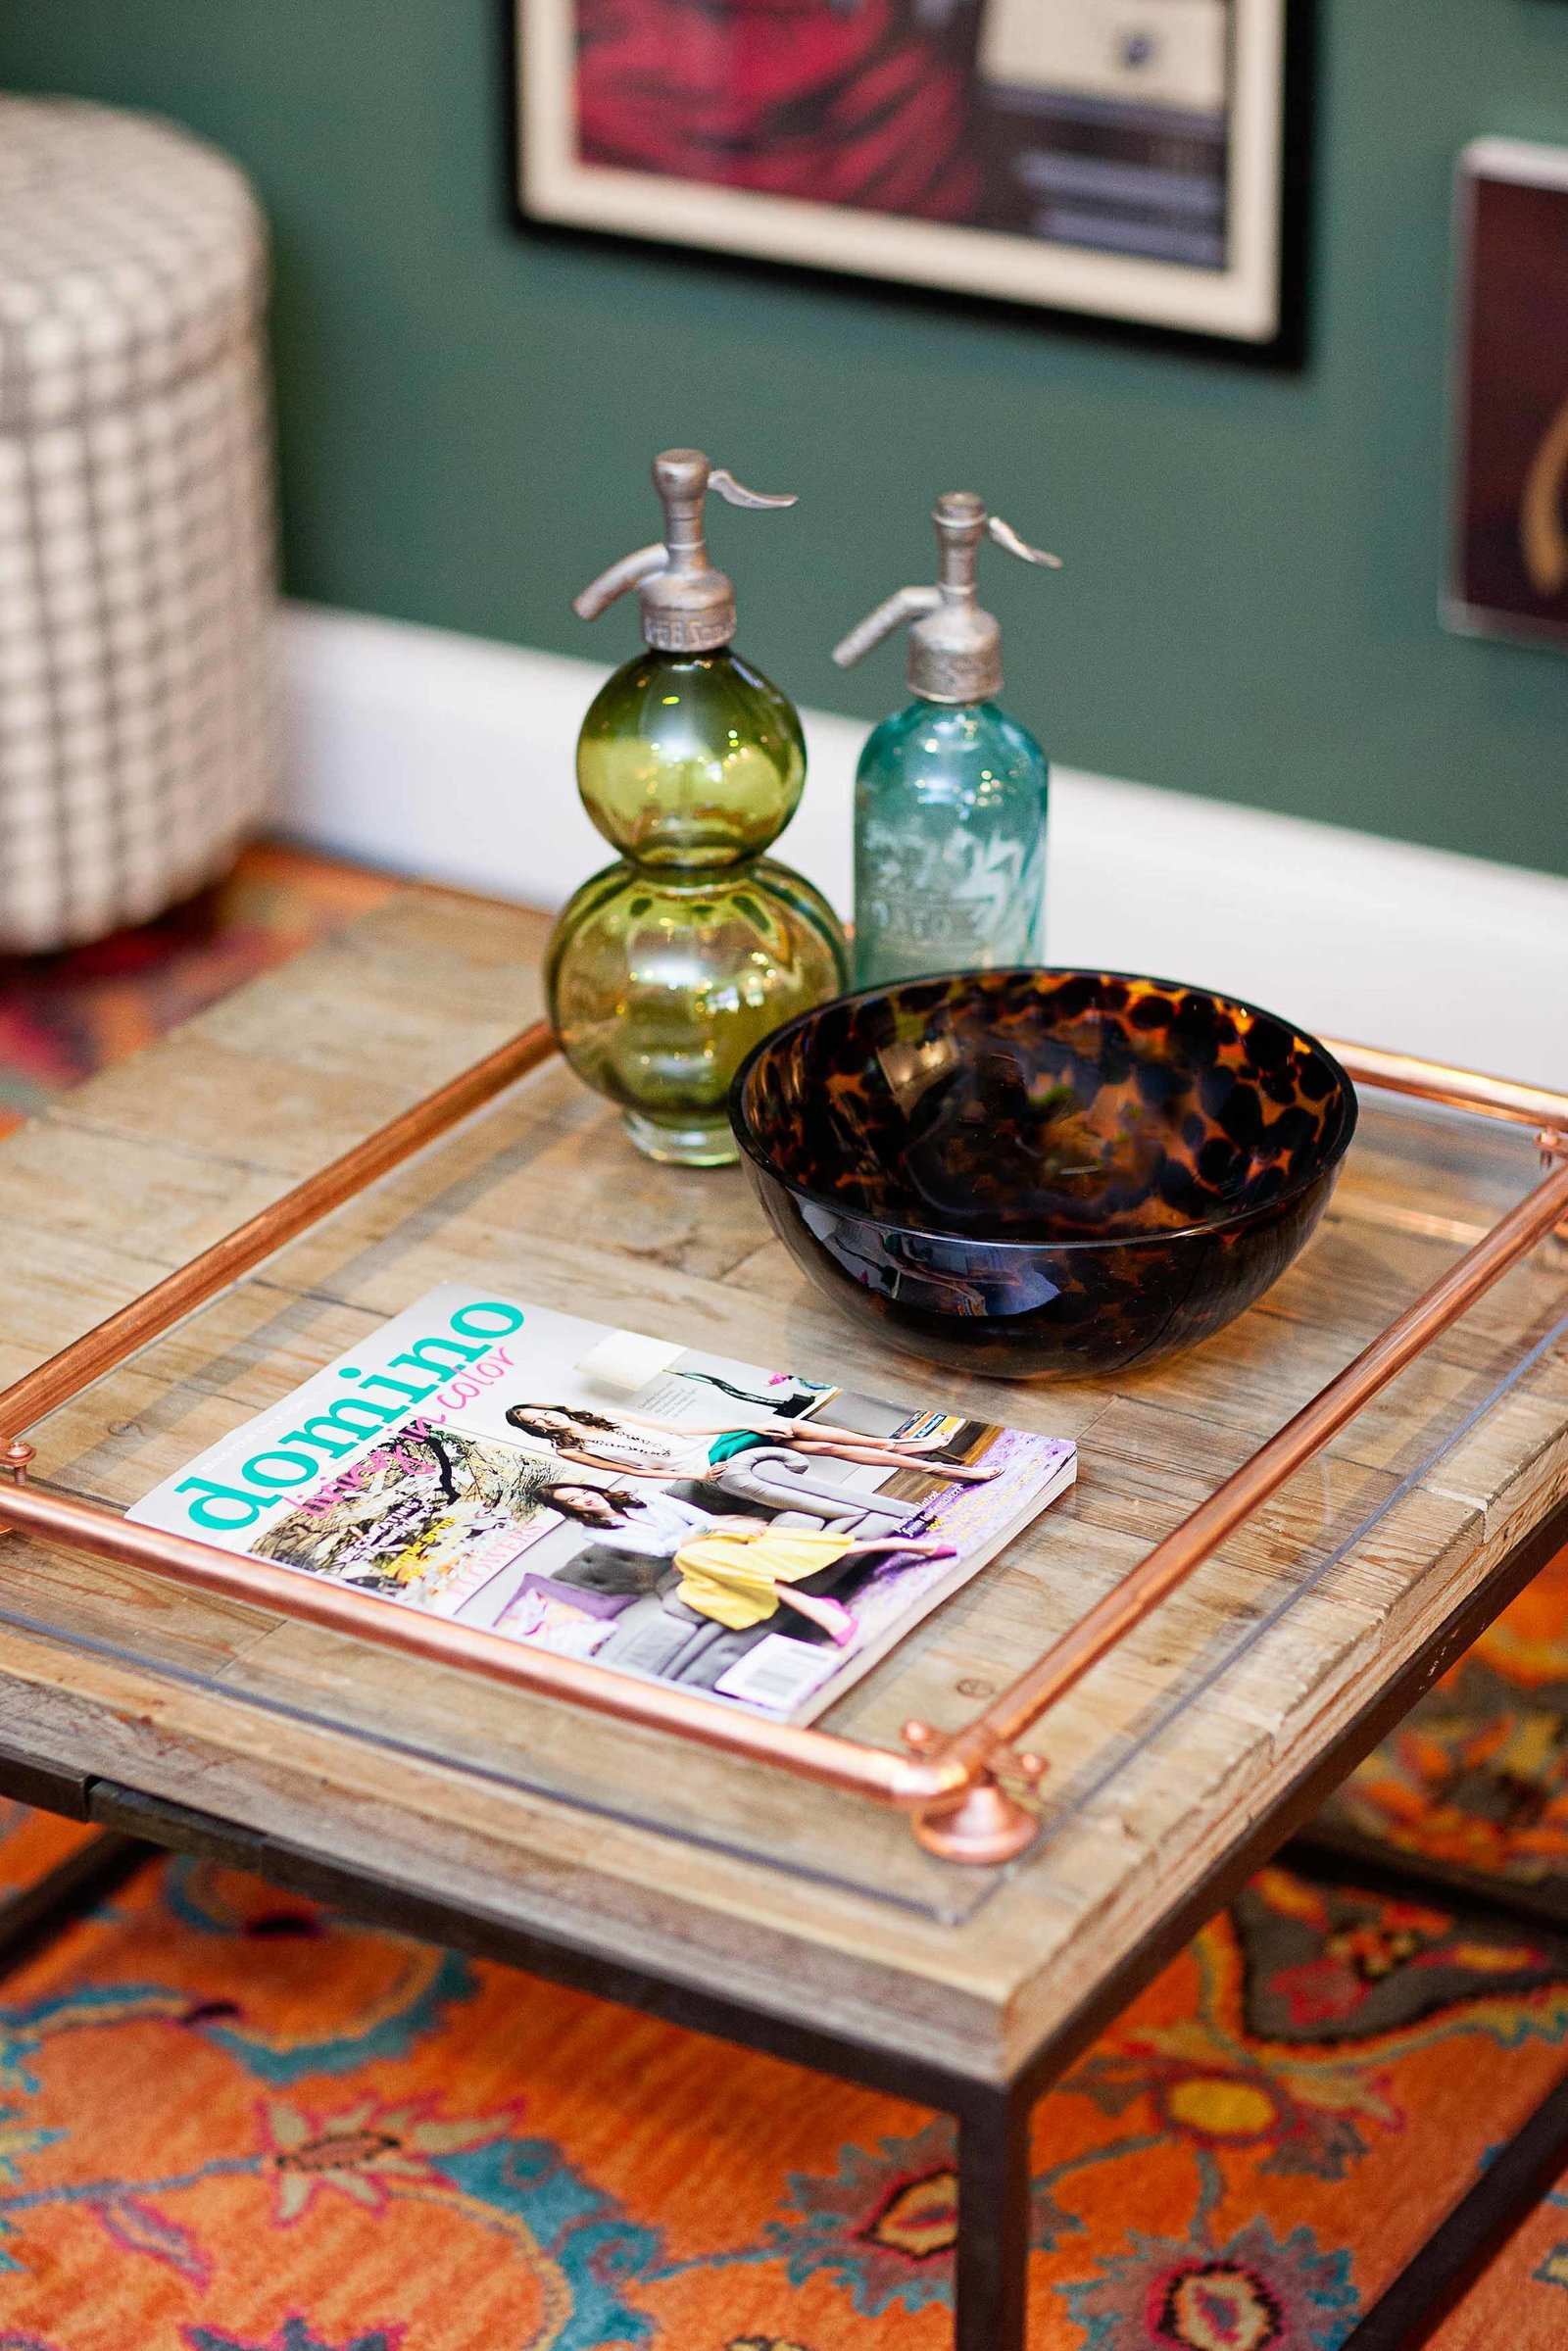 A coffee table with glass dishes and a domino magazine.